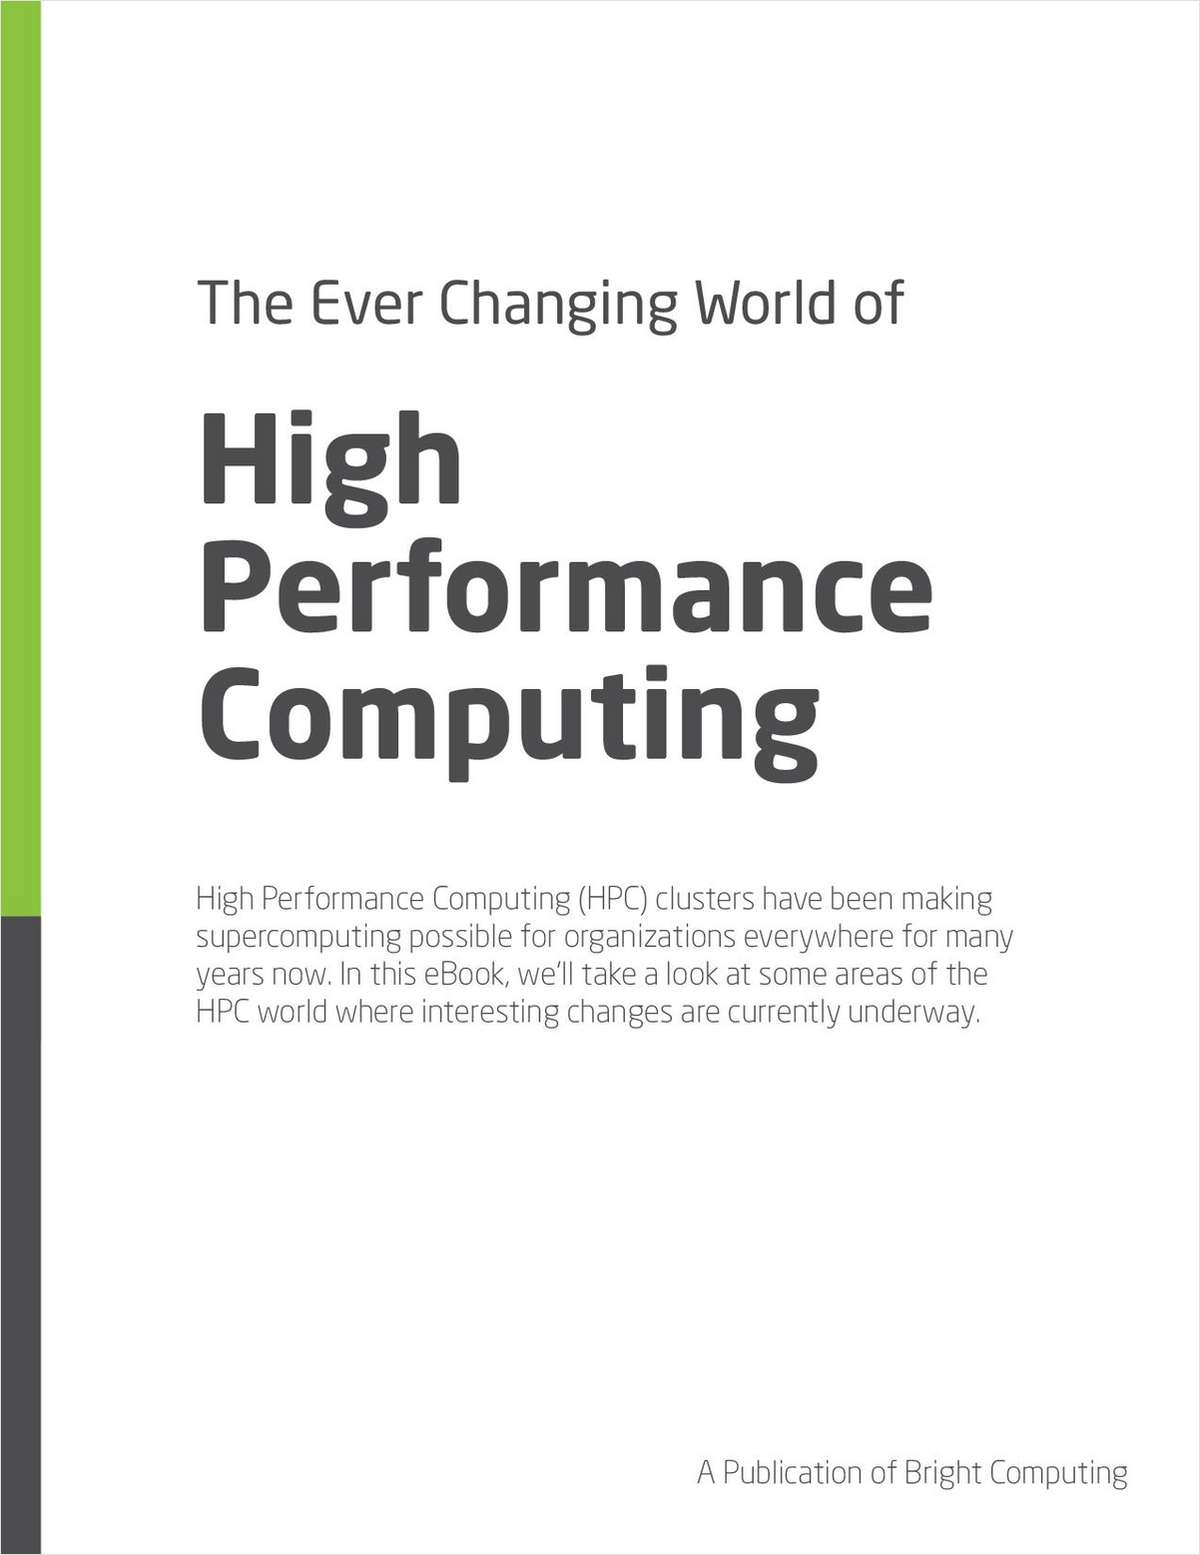 The Ever Changing World of HPC